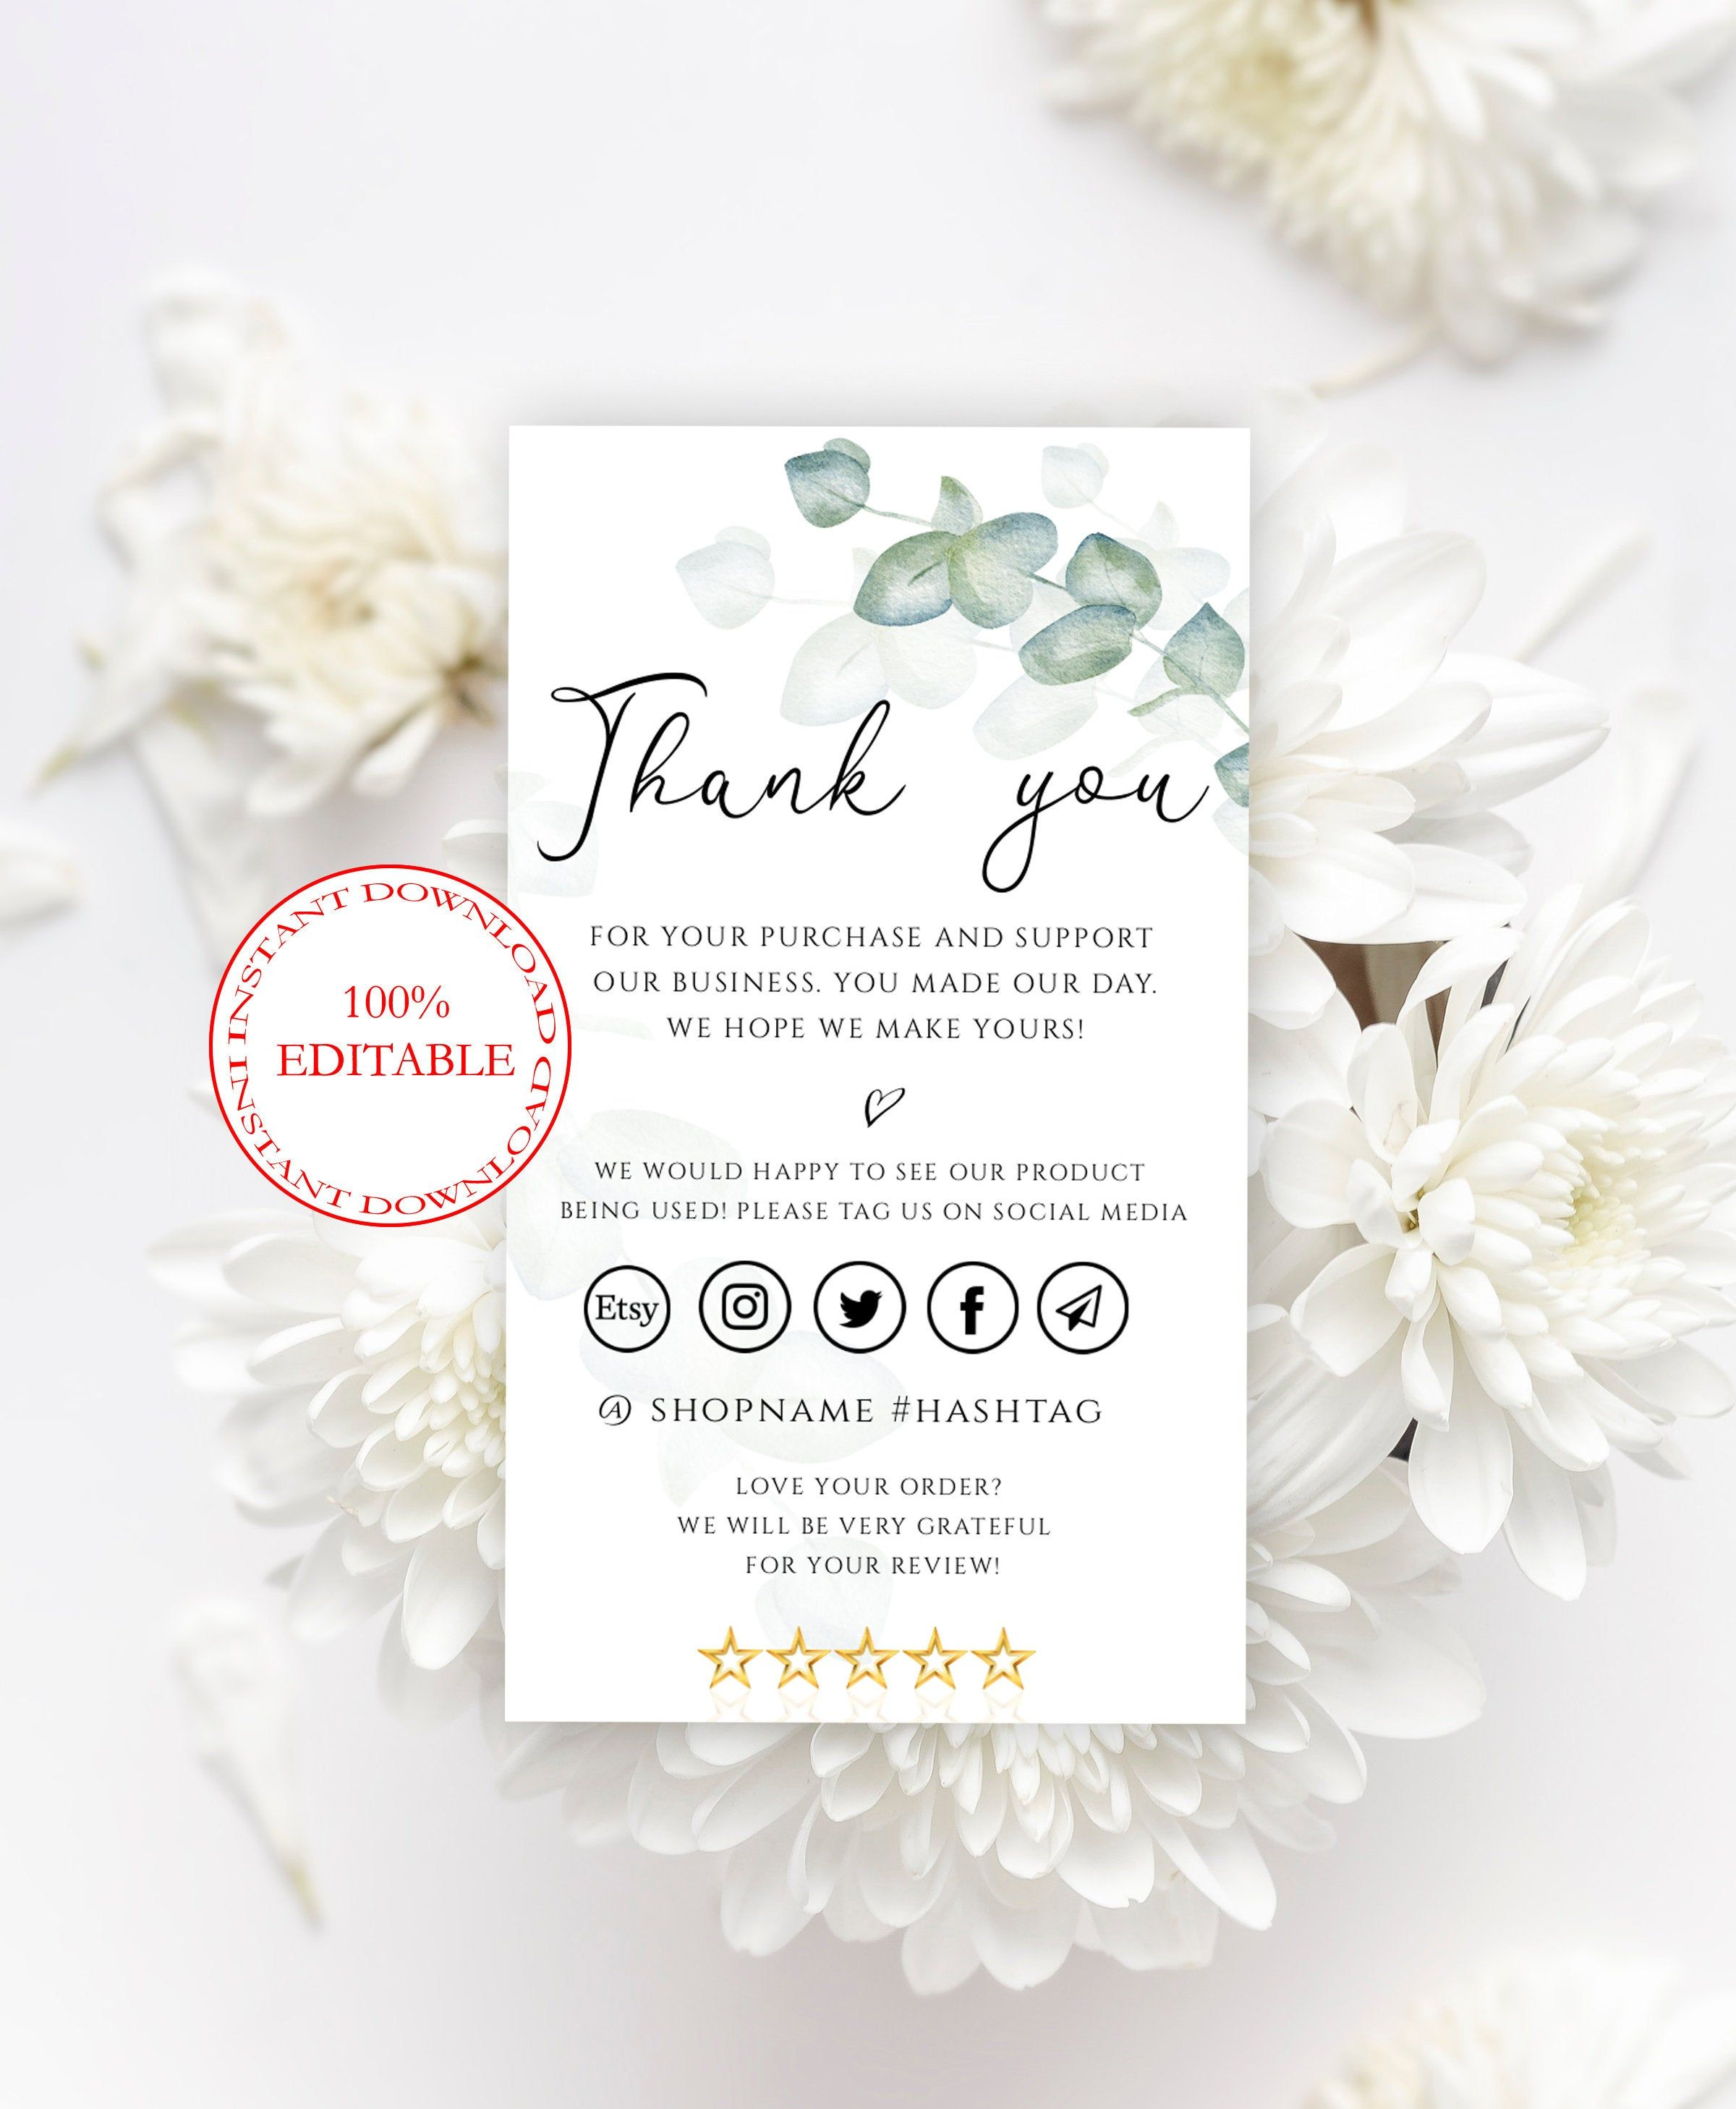 eucalyptus thank you cards template small business thank